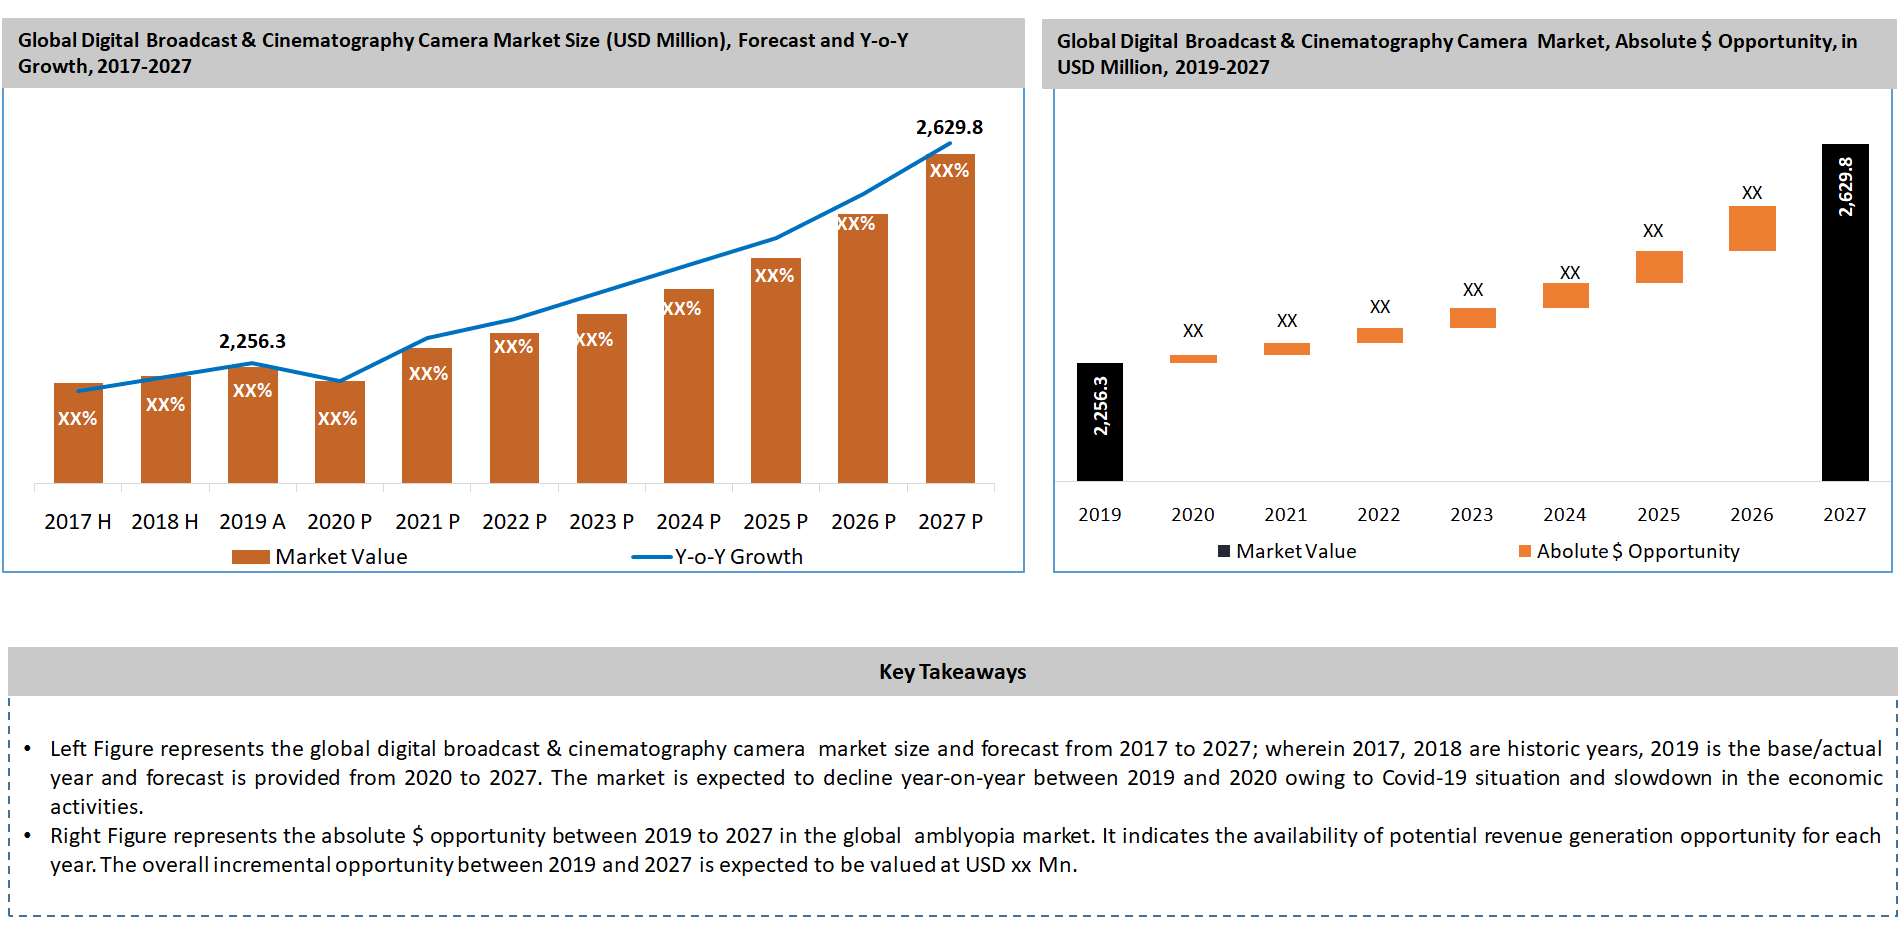 Global Digital Broadcast and Cinematography Cameras Market Key Takeaways